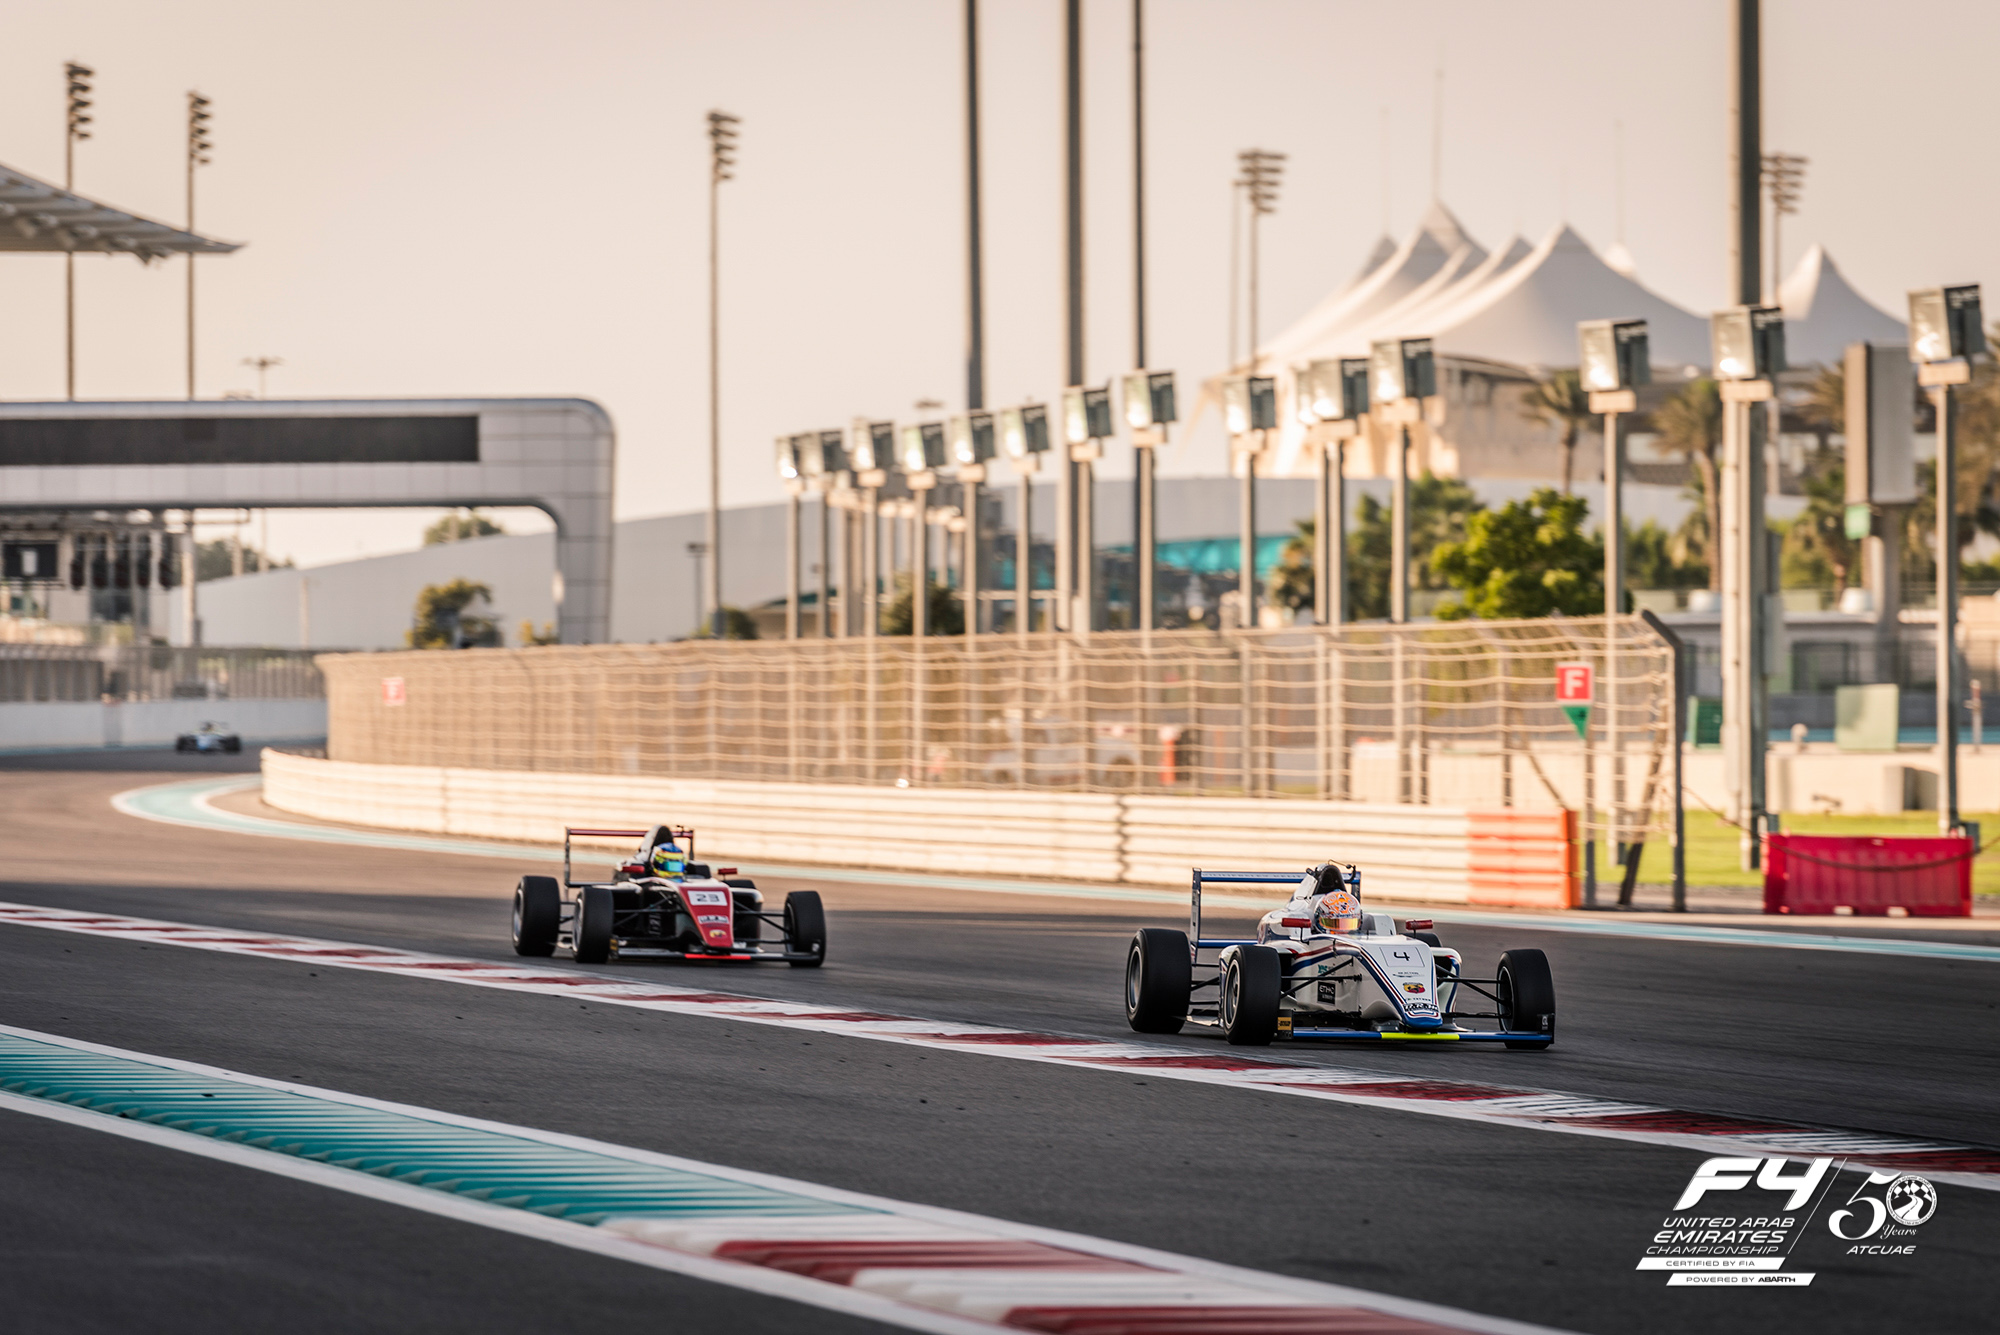 2016 12 18   F4 Second Roud   Abu Dhabi 20 Of 39